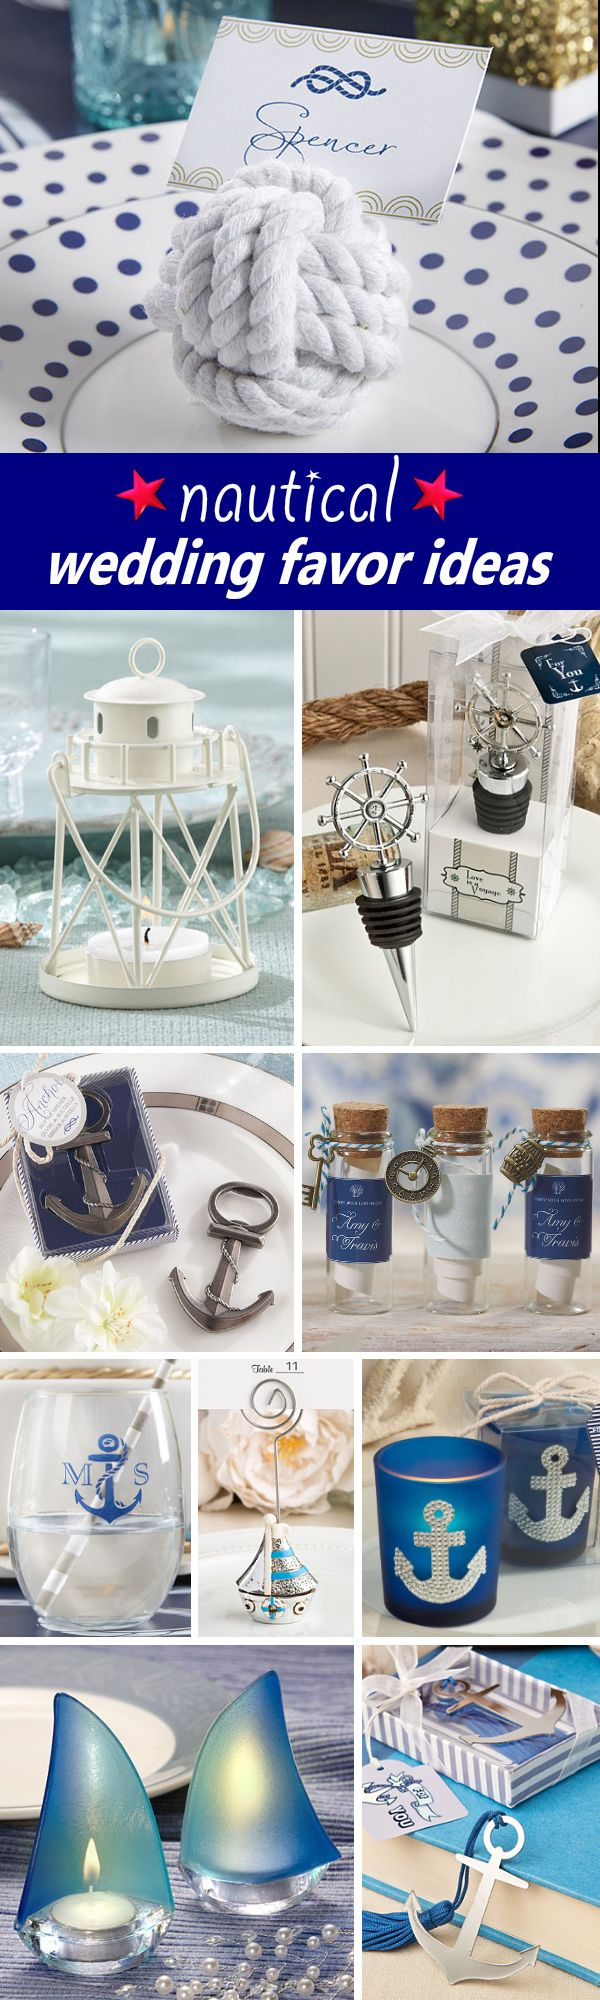 50 nautical wedding favors your guests will love! | nautical